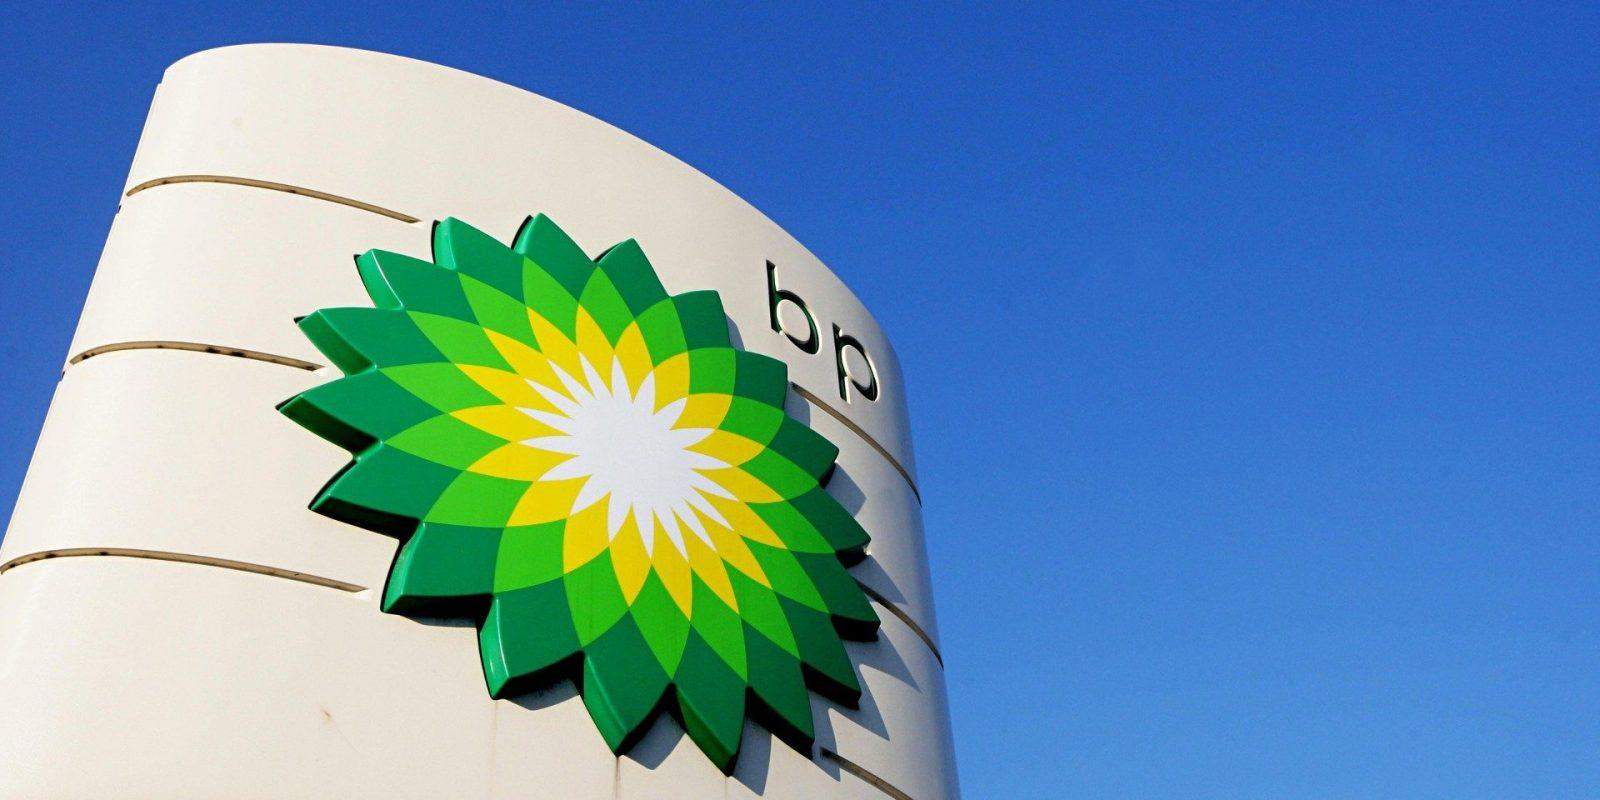 EGEB: BP will slash up to $17.5 billion off the value of its assets